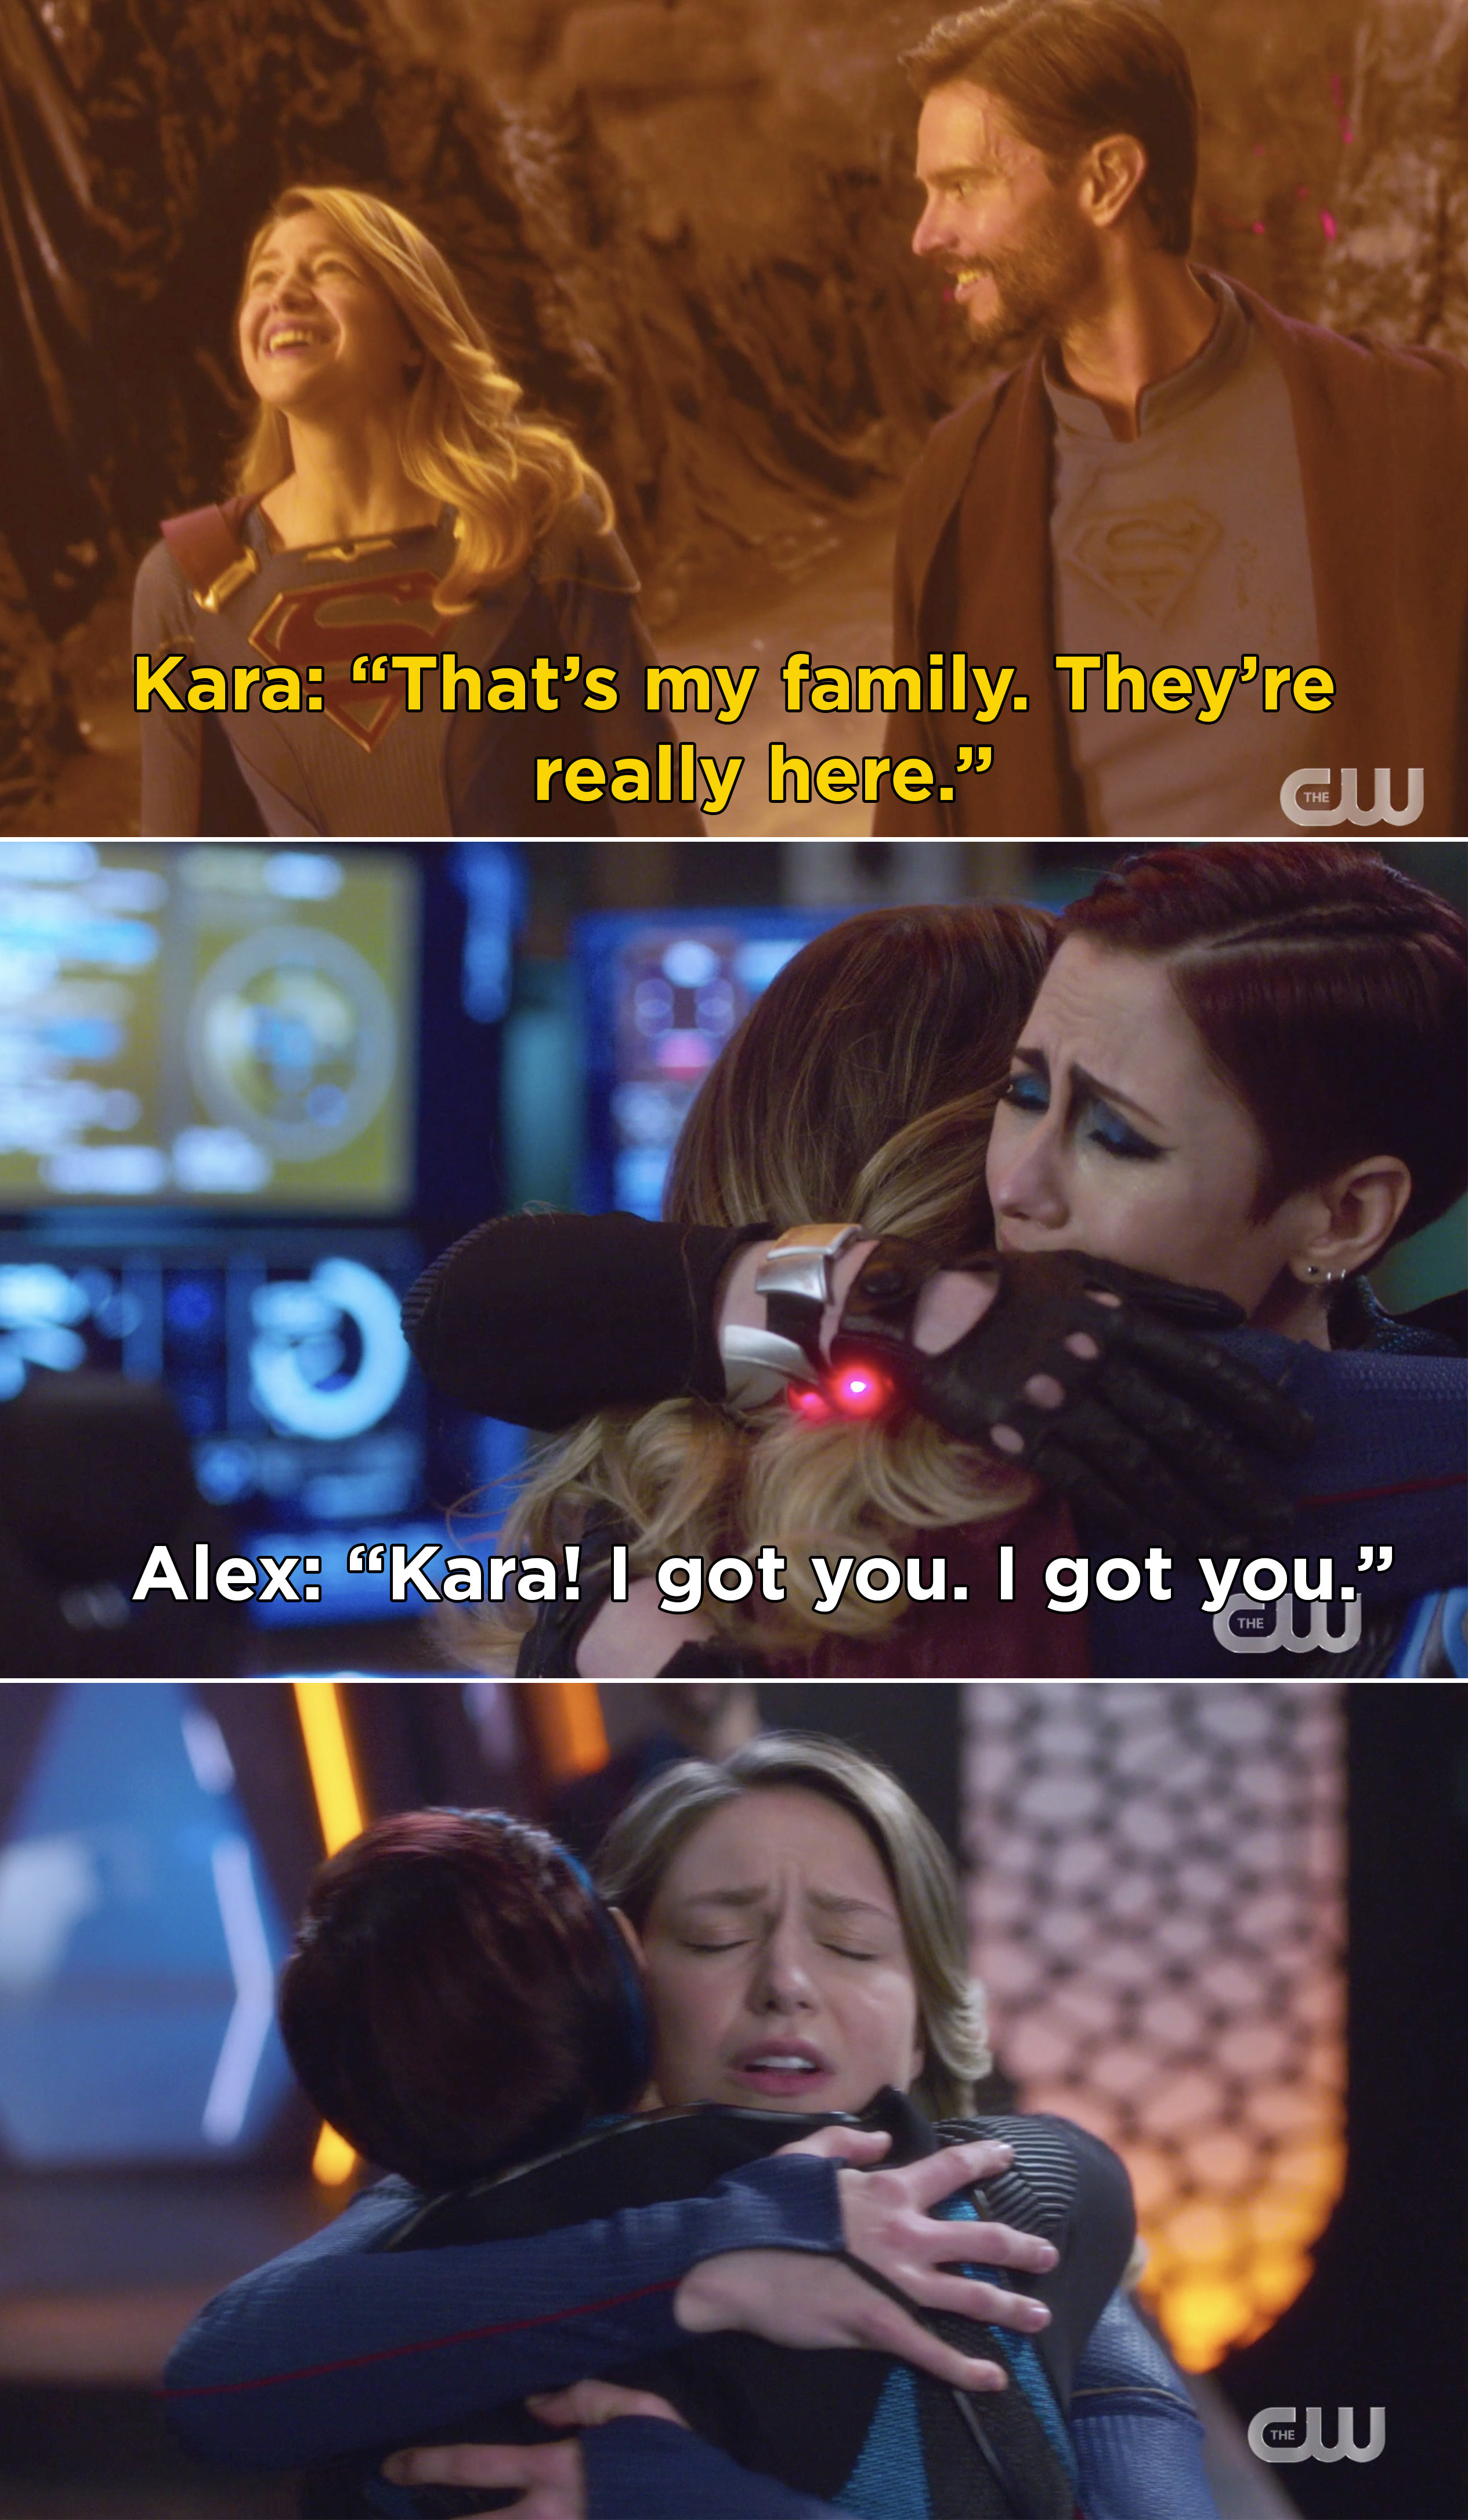 """Kara saying, """"That's my family. They're really here"""" and then Alex and Kara hugging and Alex saying, """"Kara! I got you. I got you"""""""